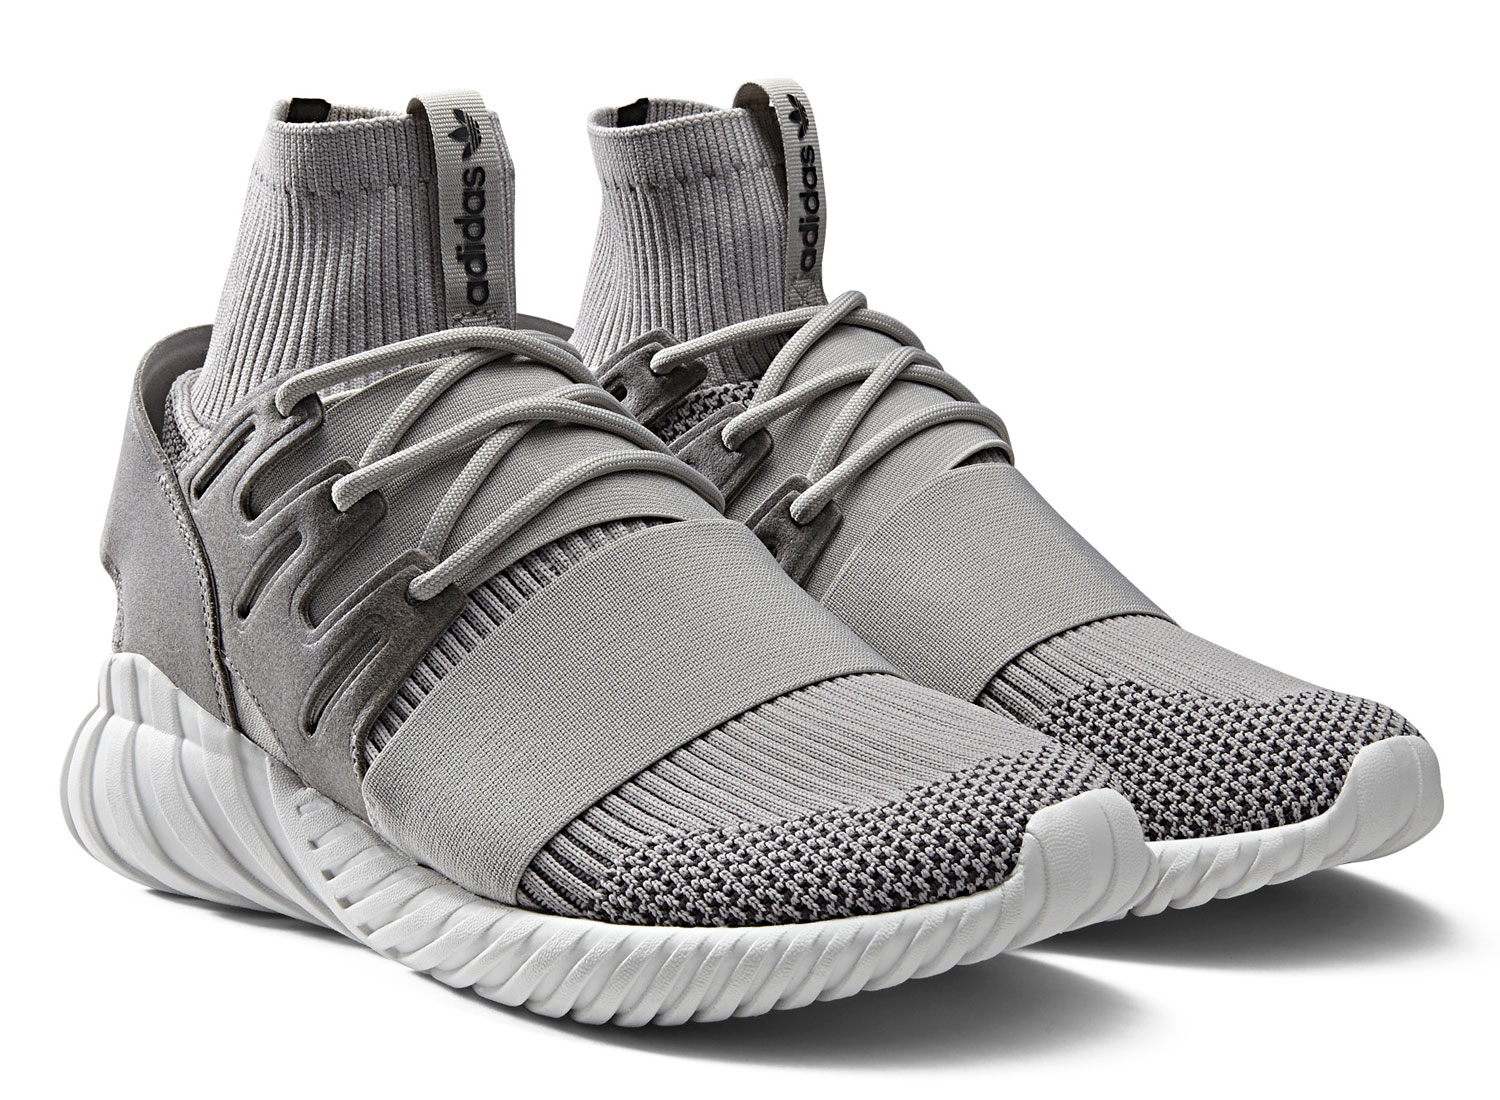 quality design f7395 b423a Adidas Originals Tubular Doom PK Clear Granite